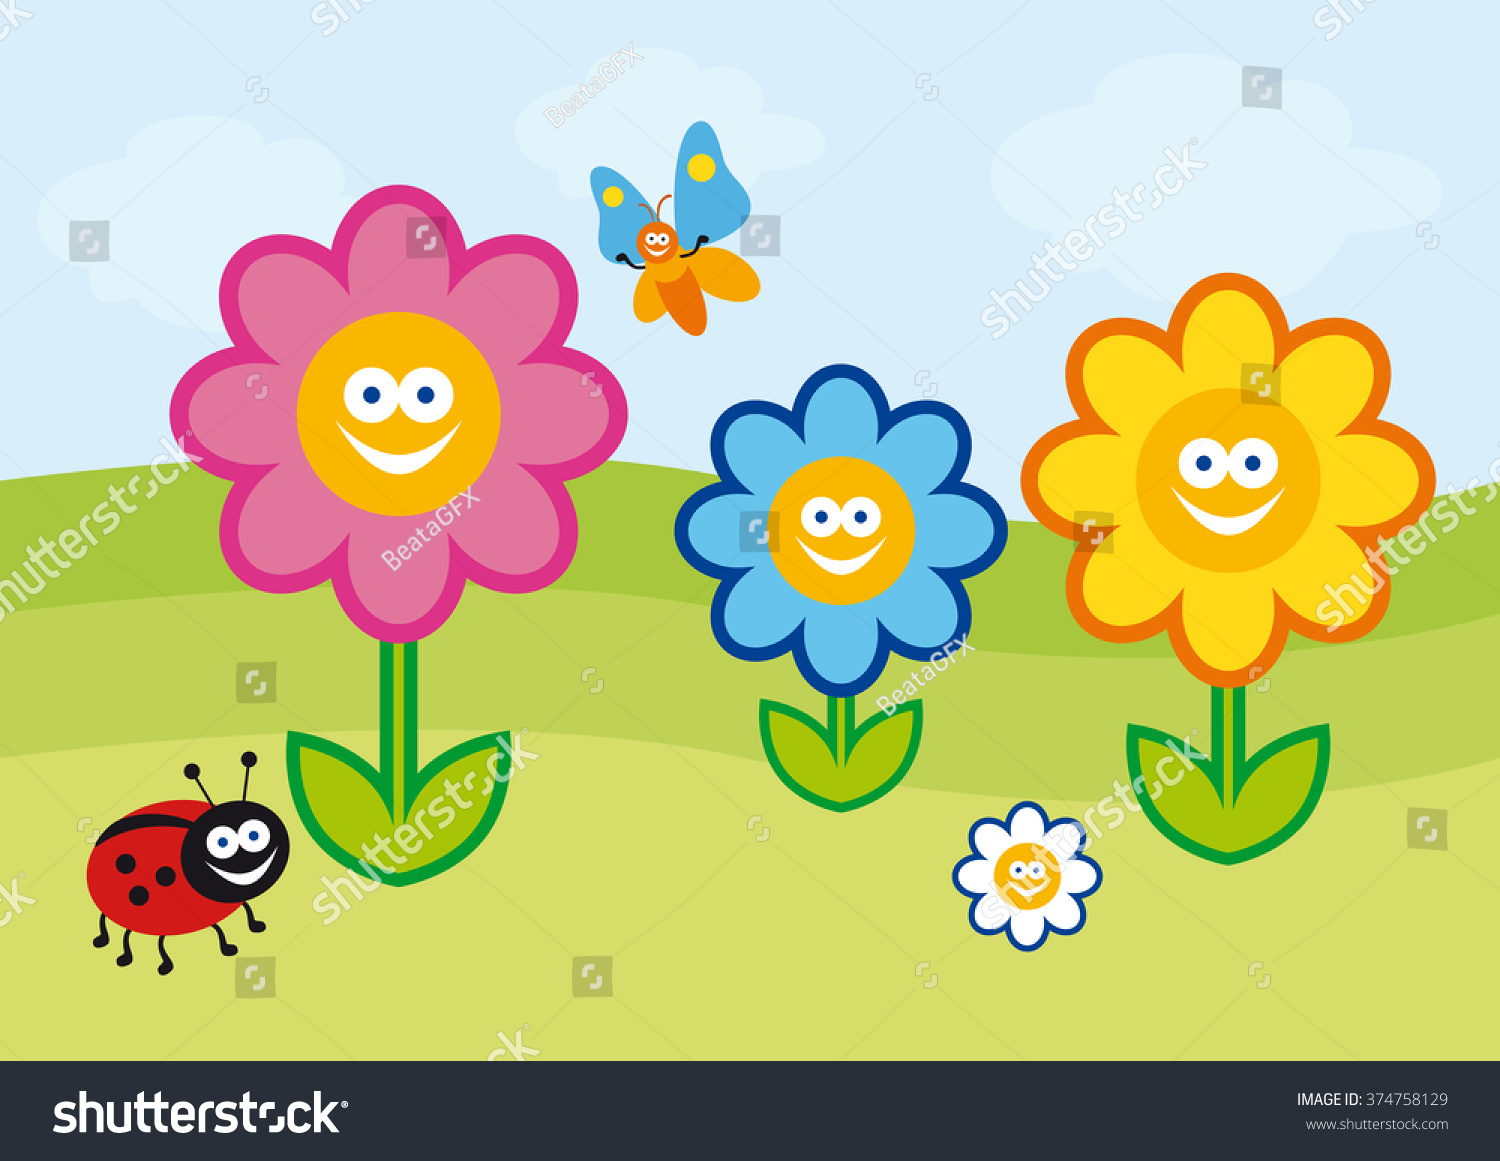 Funny Spring Illustration Vector Colorful Flowers Stock Vector